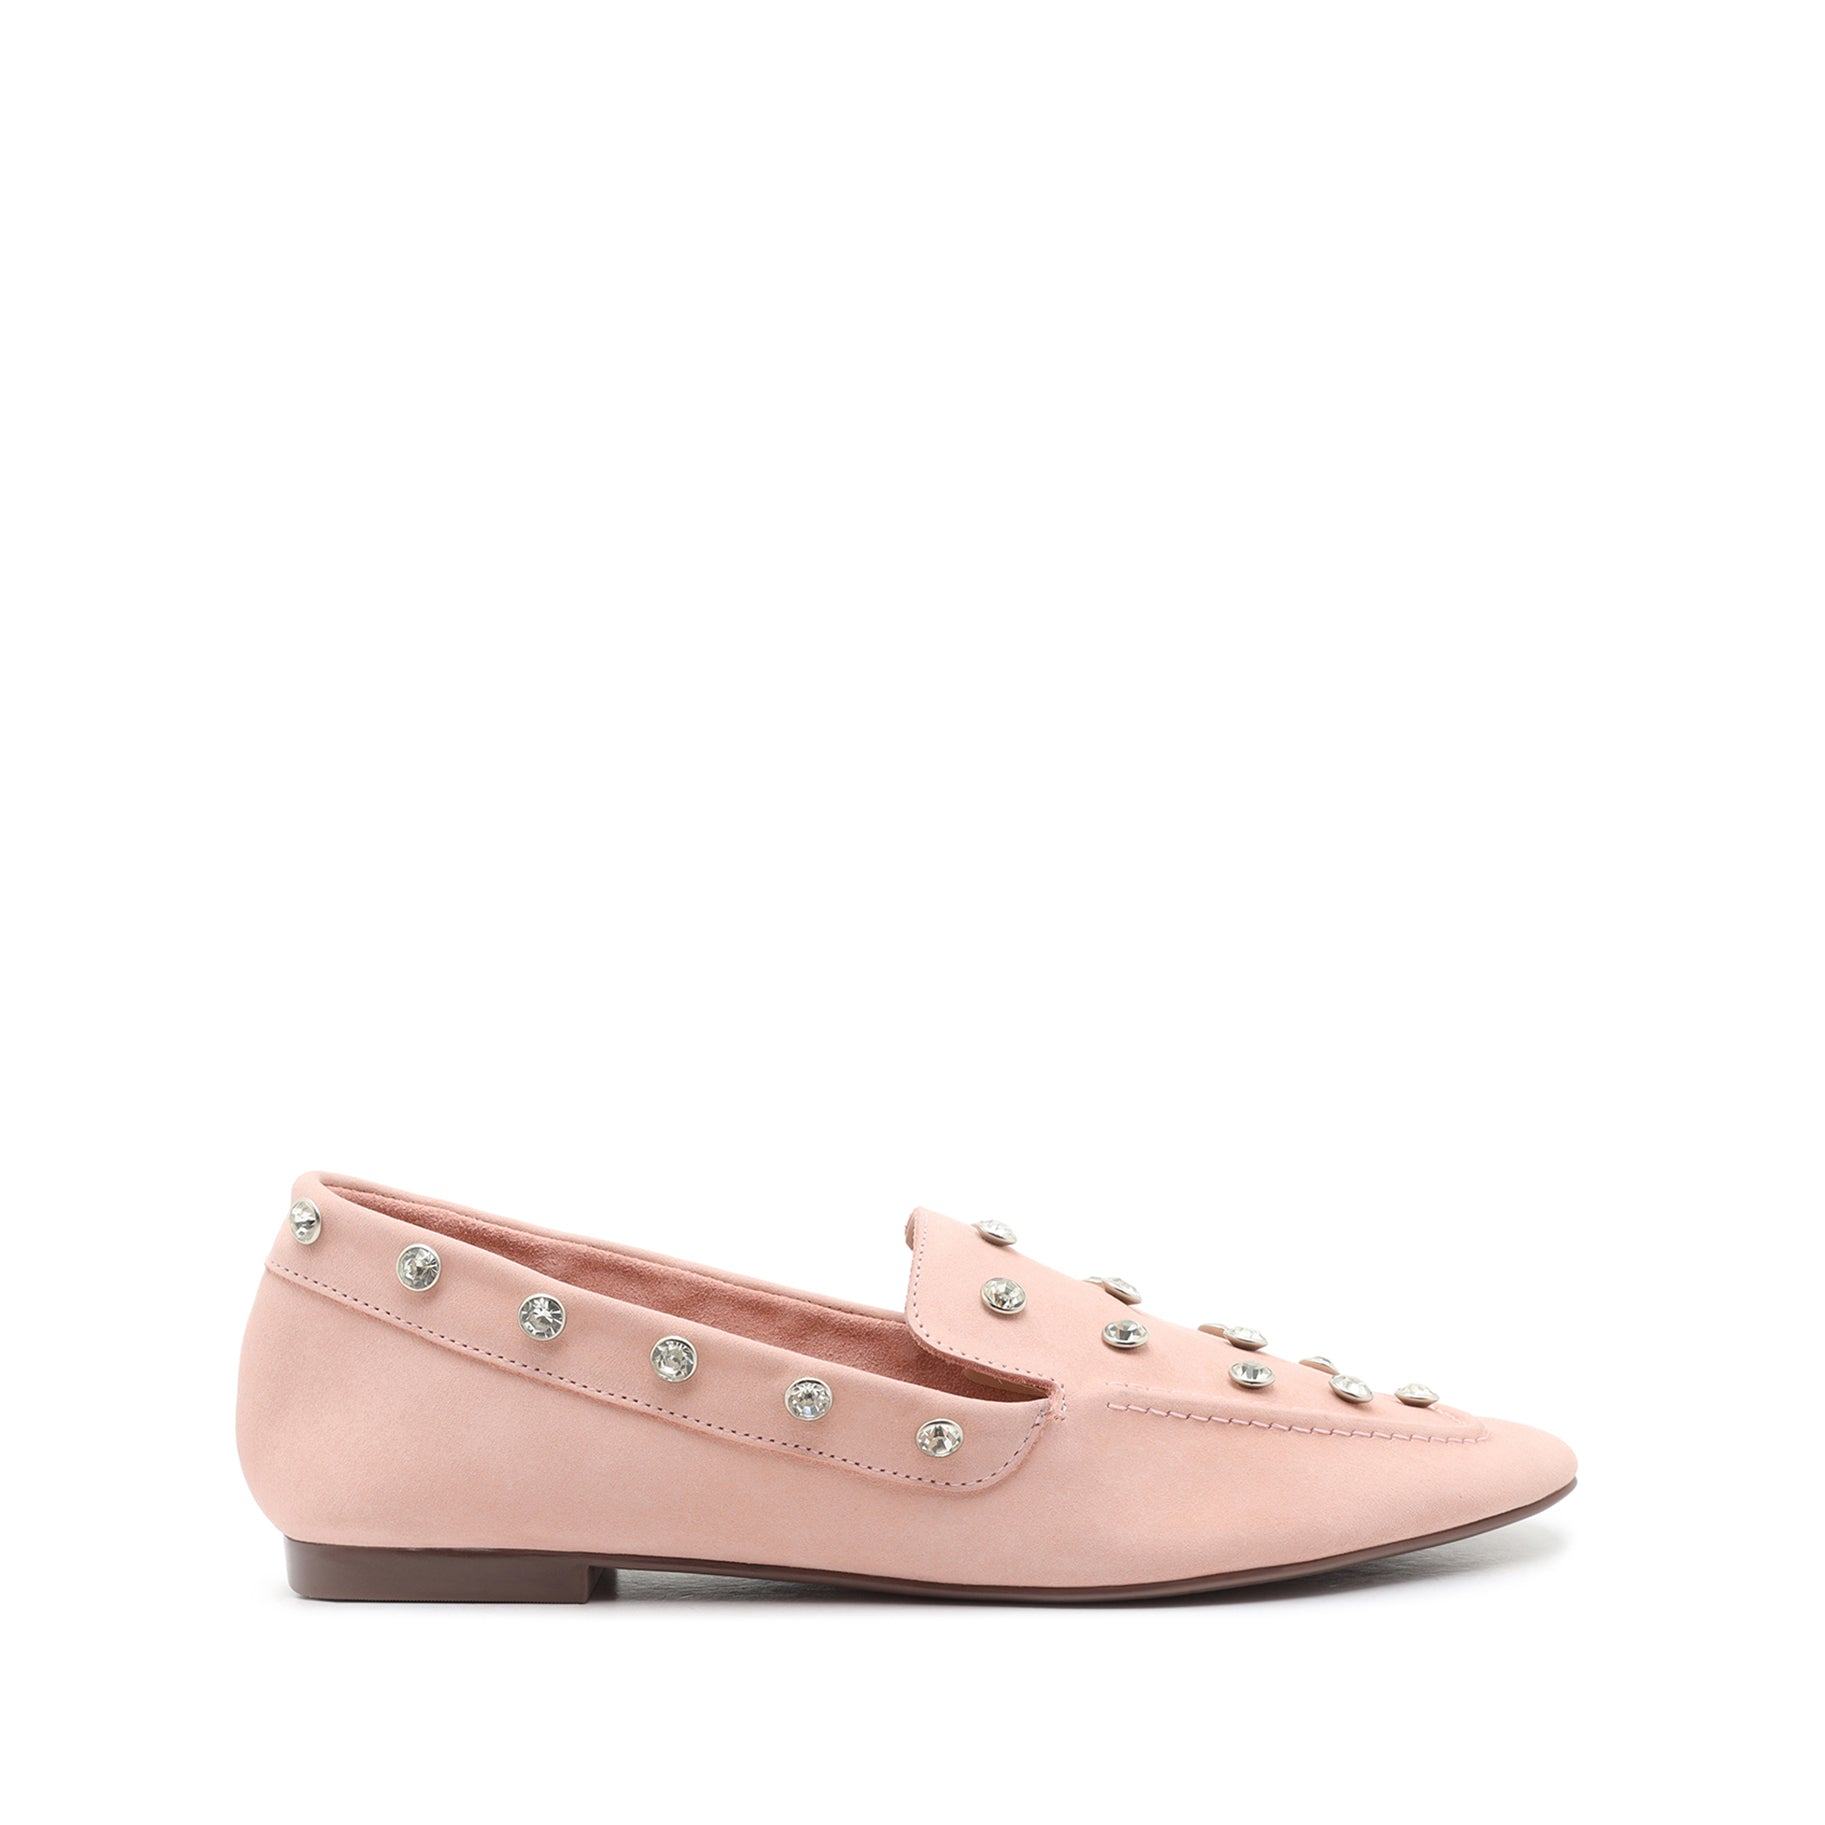 Lili Studded Suede Loafer